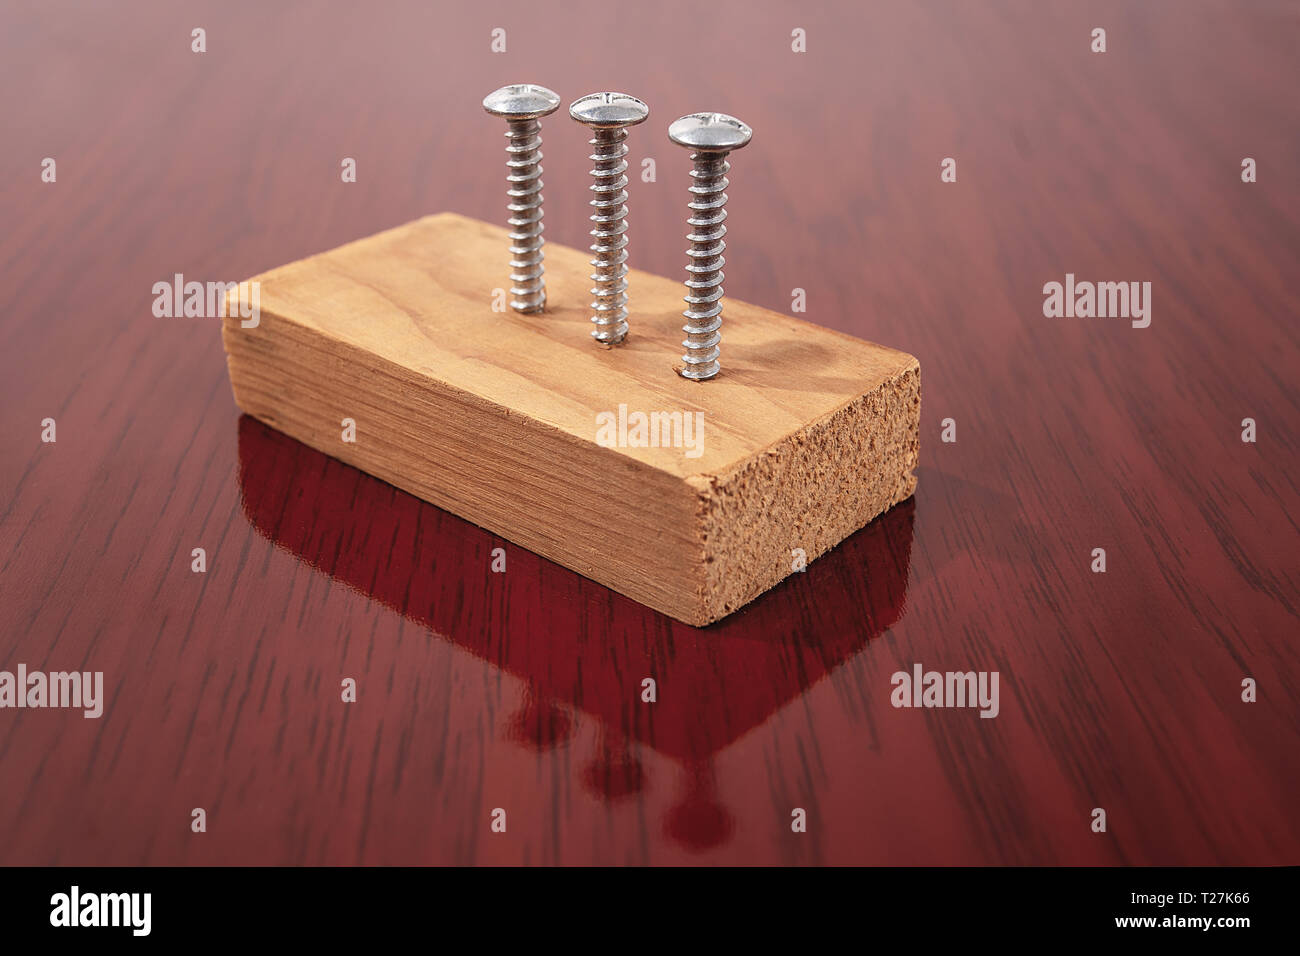 Three screws screwed into a piece of wood on a wooden finish surface - Stock Image